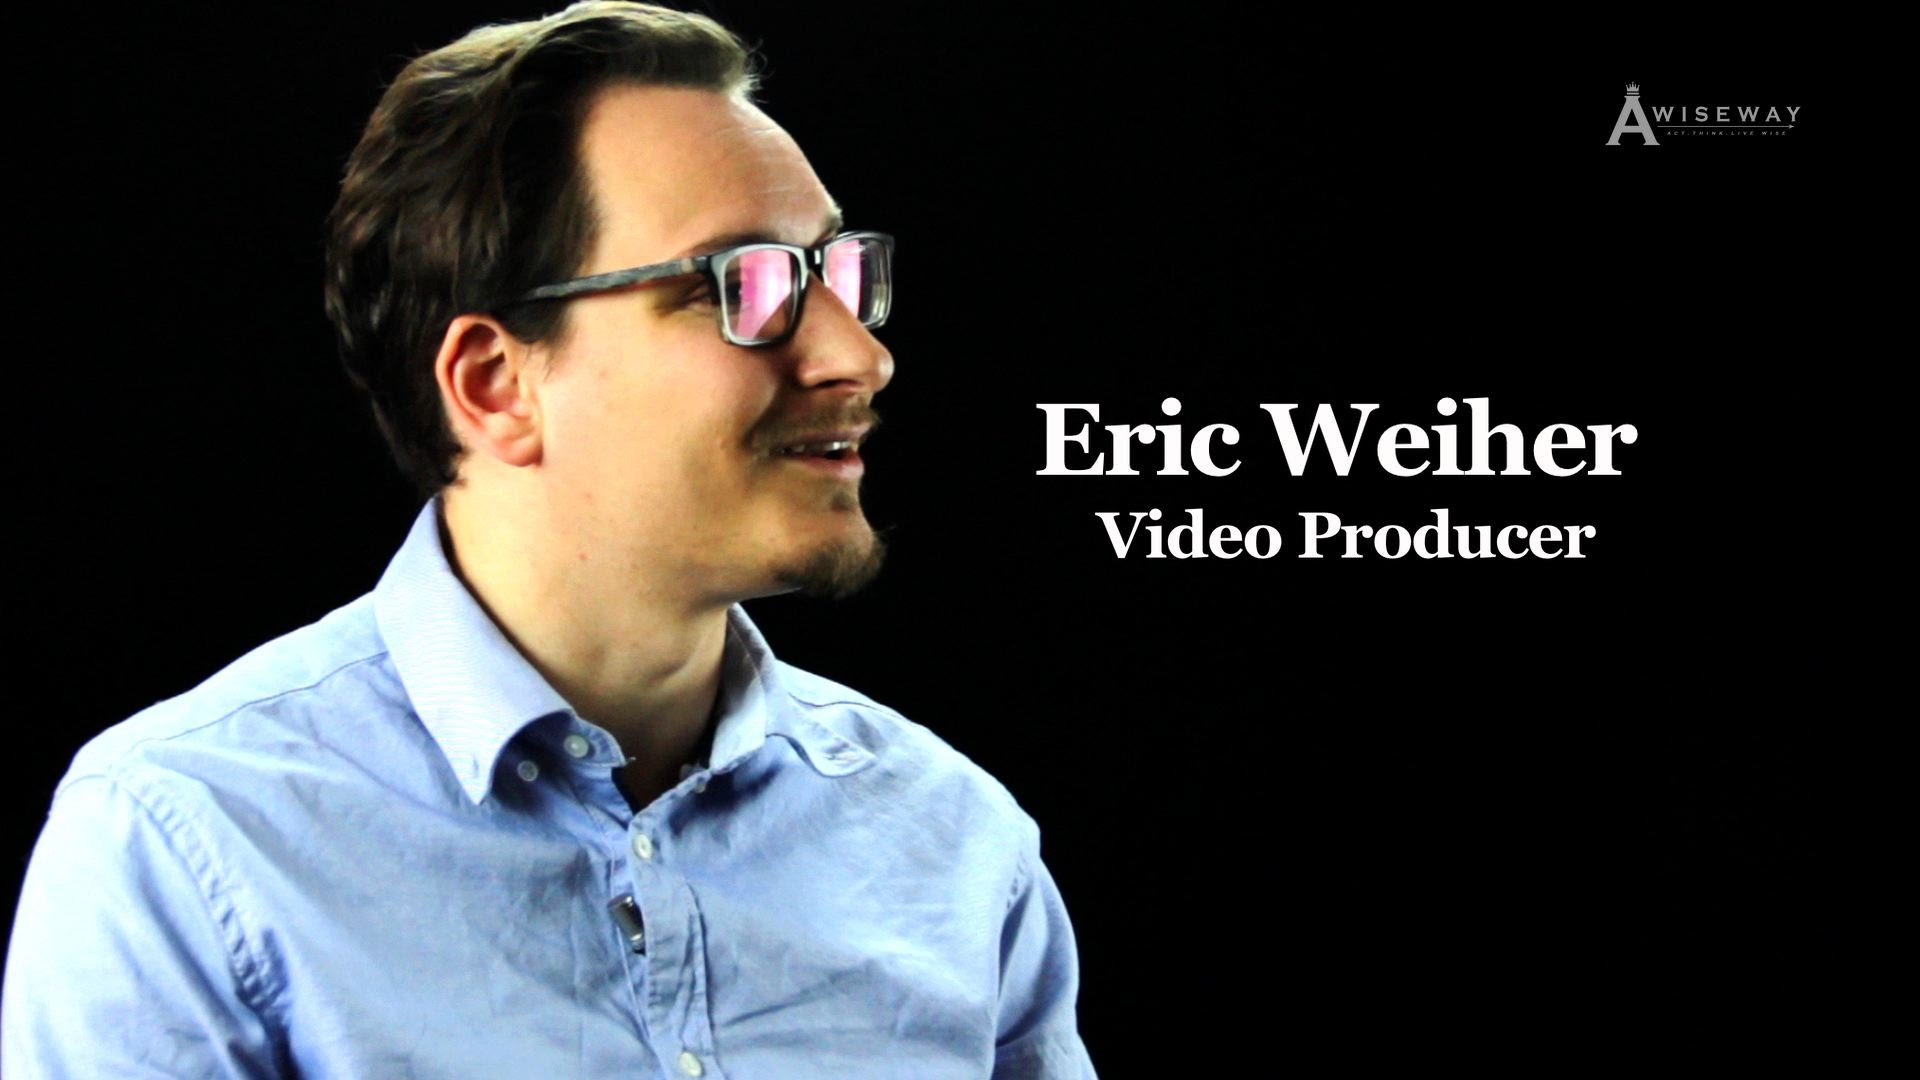 Video Producer Explains the Difficulty of Getting New Business